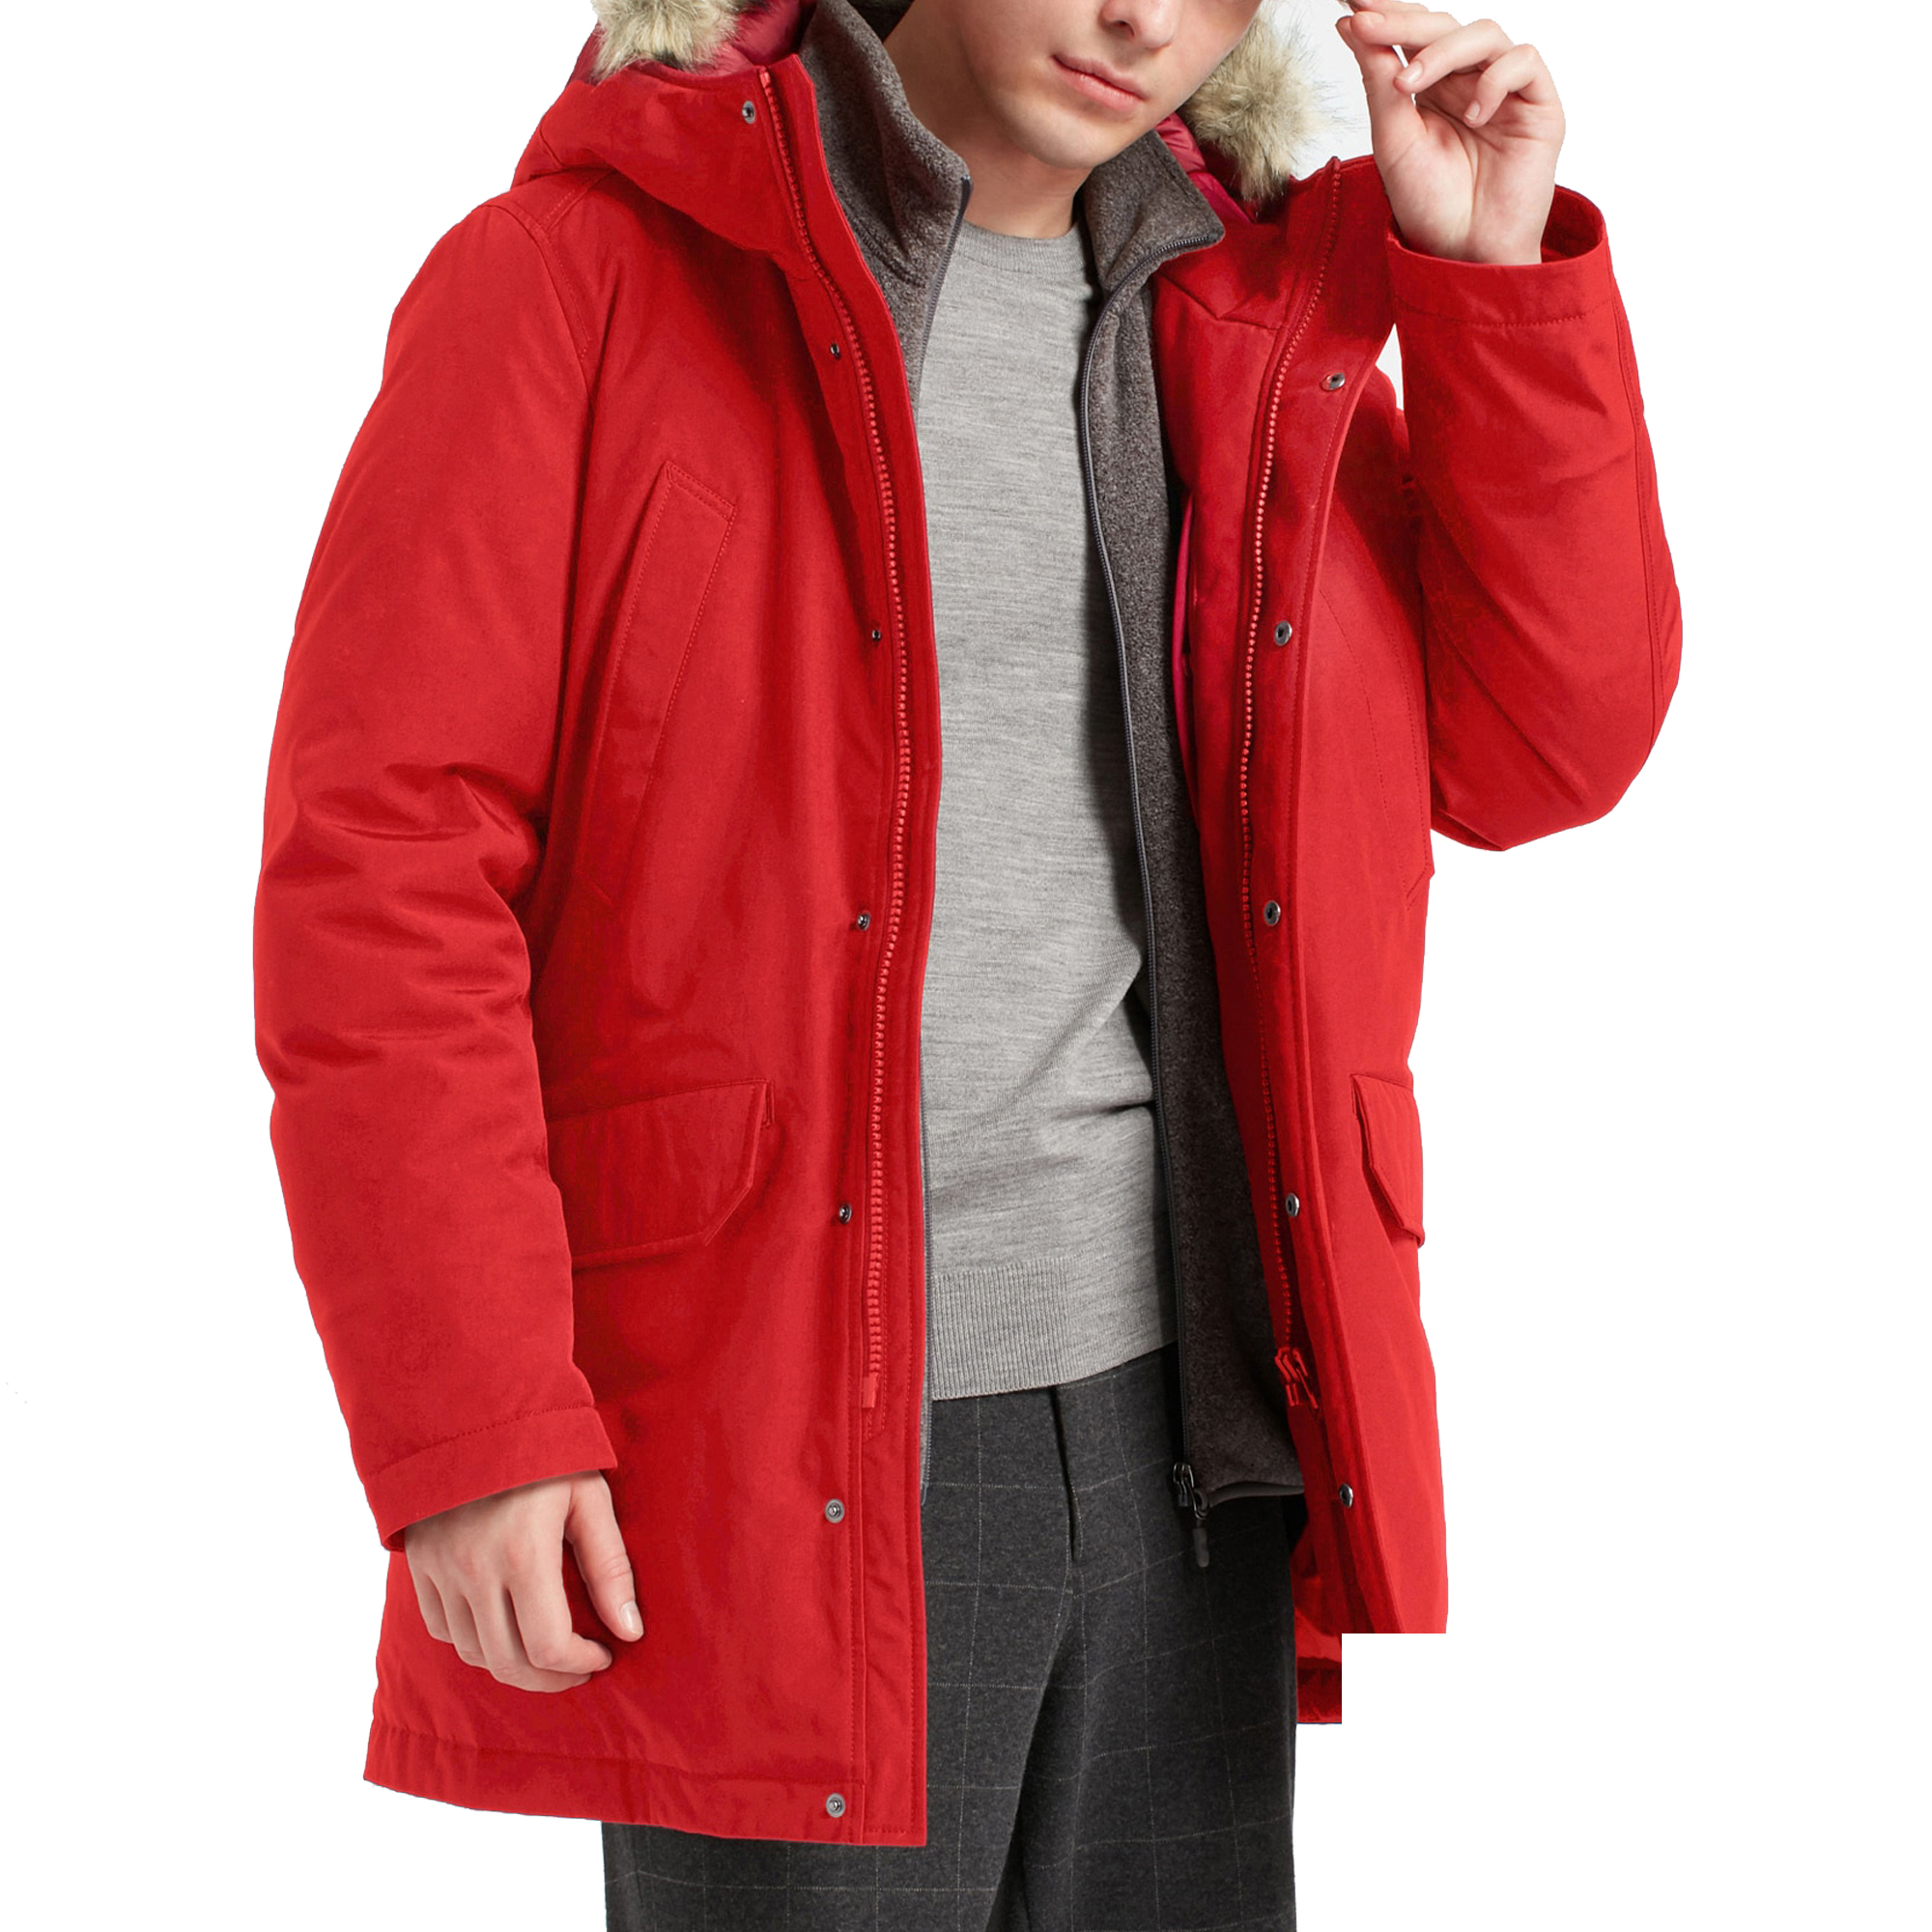 Great Gift Ideas for Men for Christmas: Uniqlo Hybrid Down Ultra Warm Coat